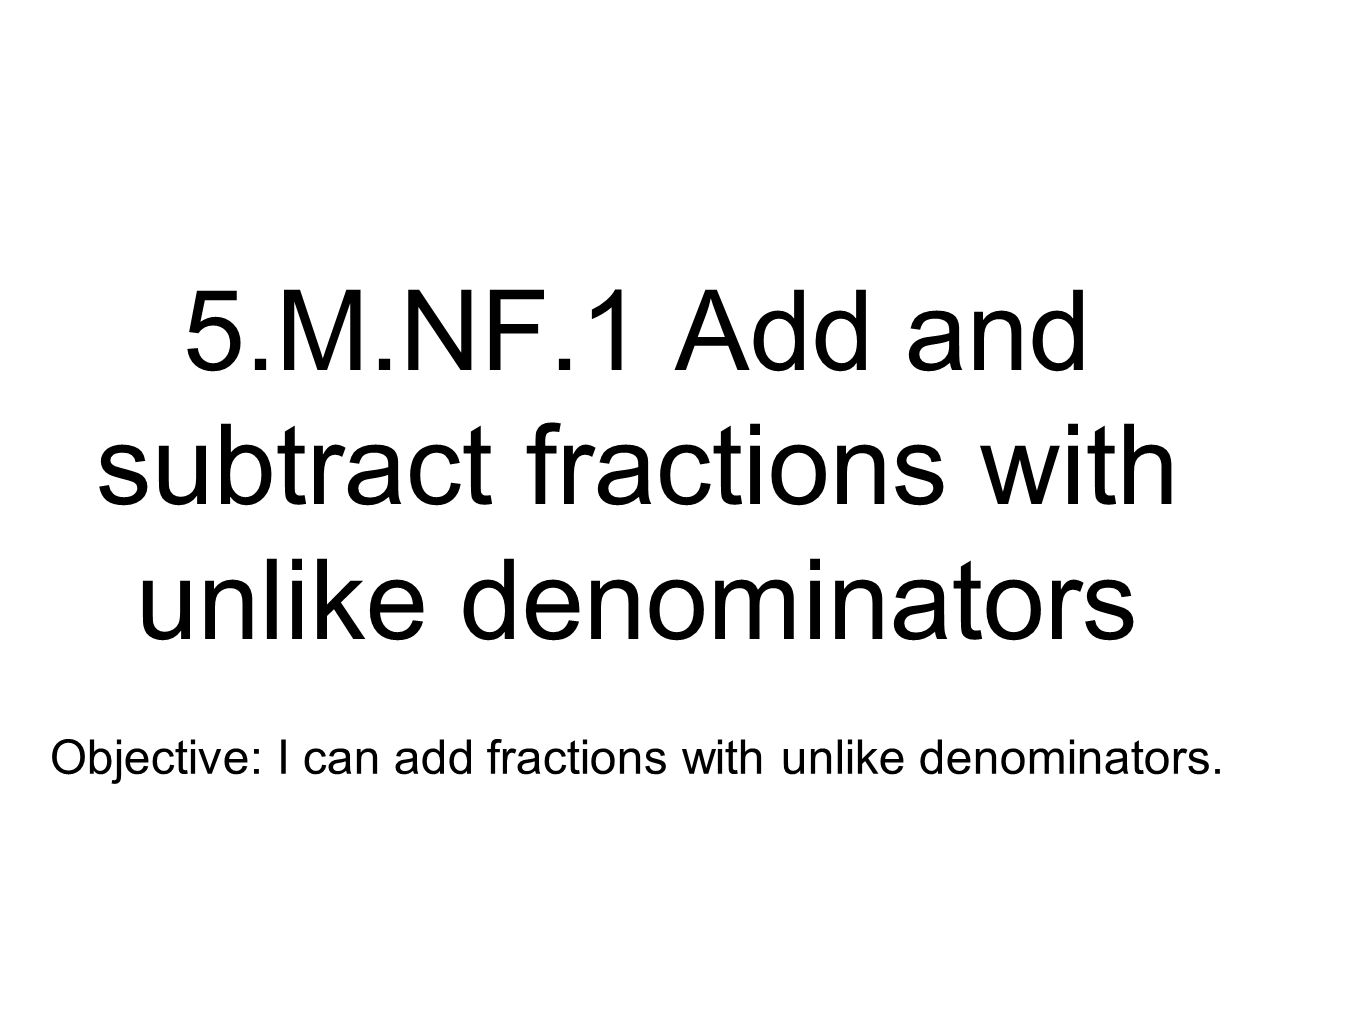 M1 Add And Subtract Fractions With Unlike Denominators 5m1 Add And Subtract  Fractions With Unlike Denominators